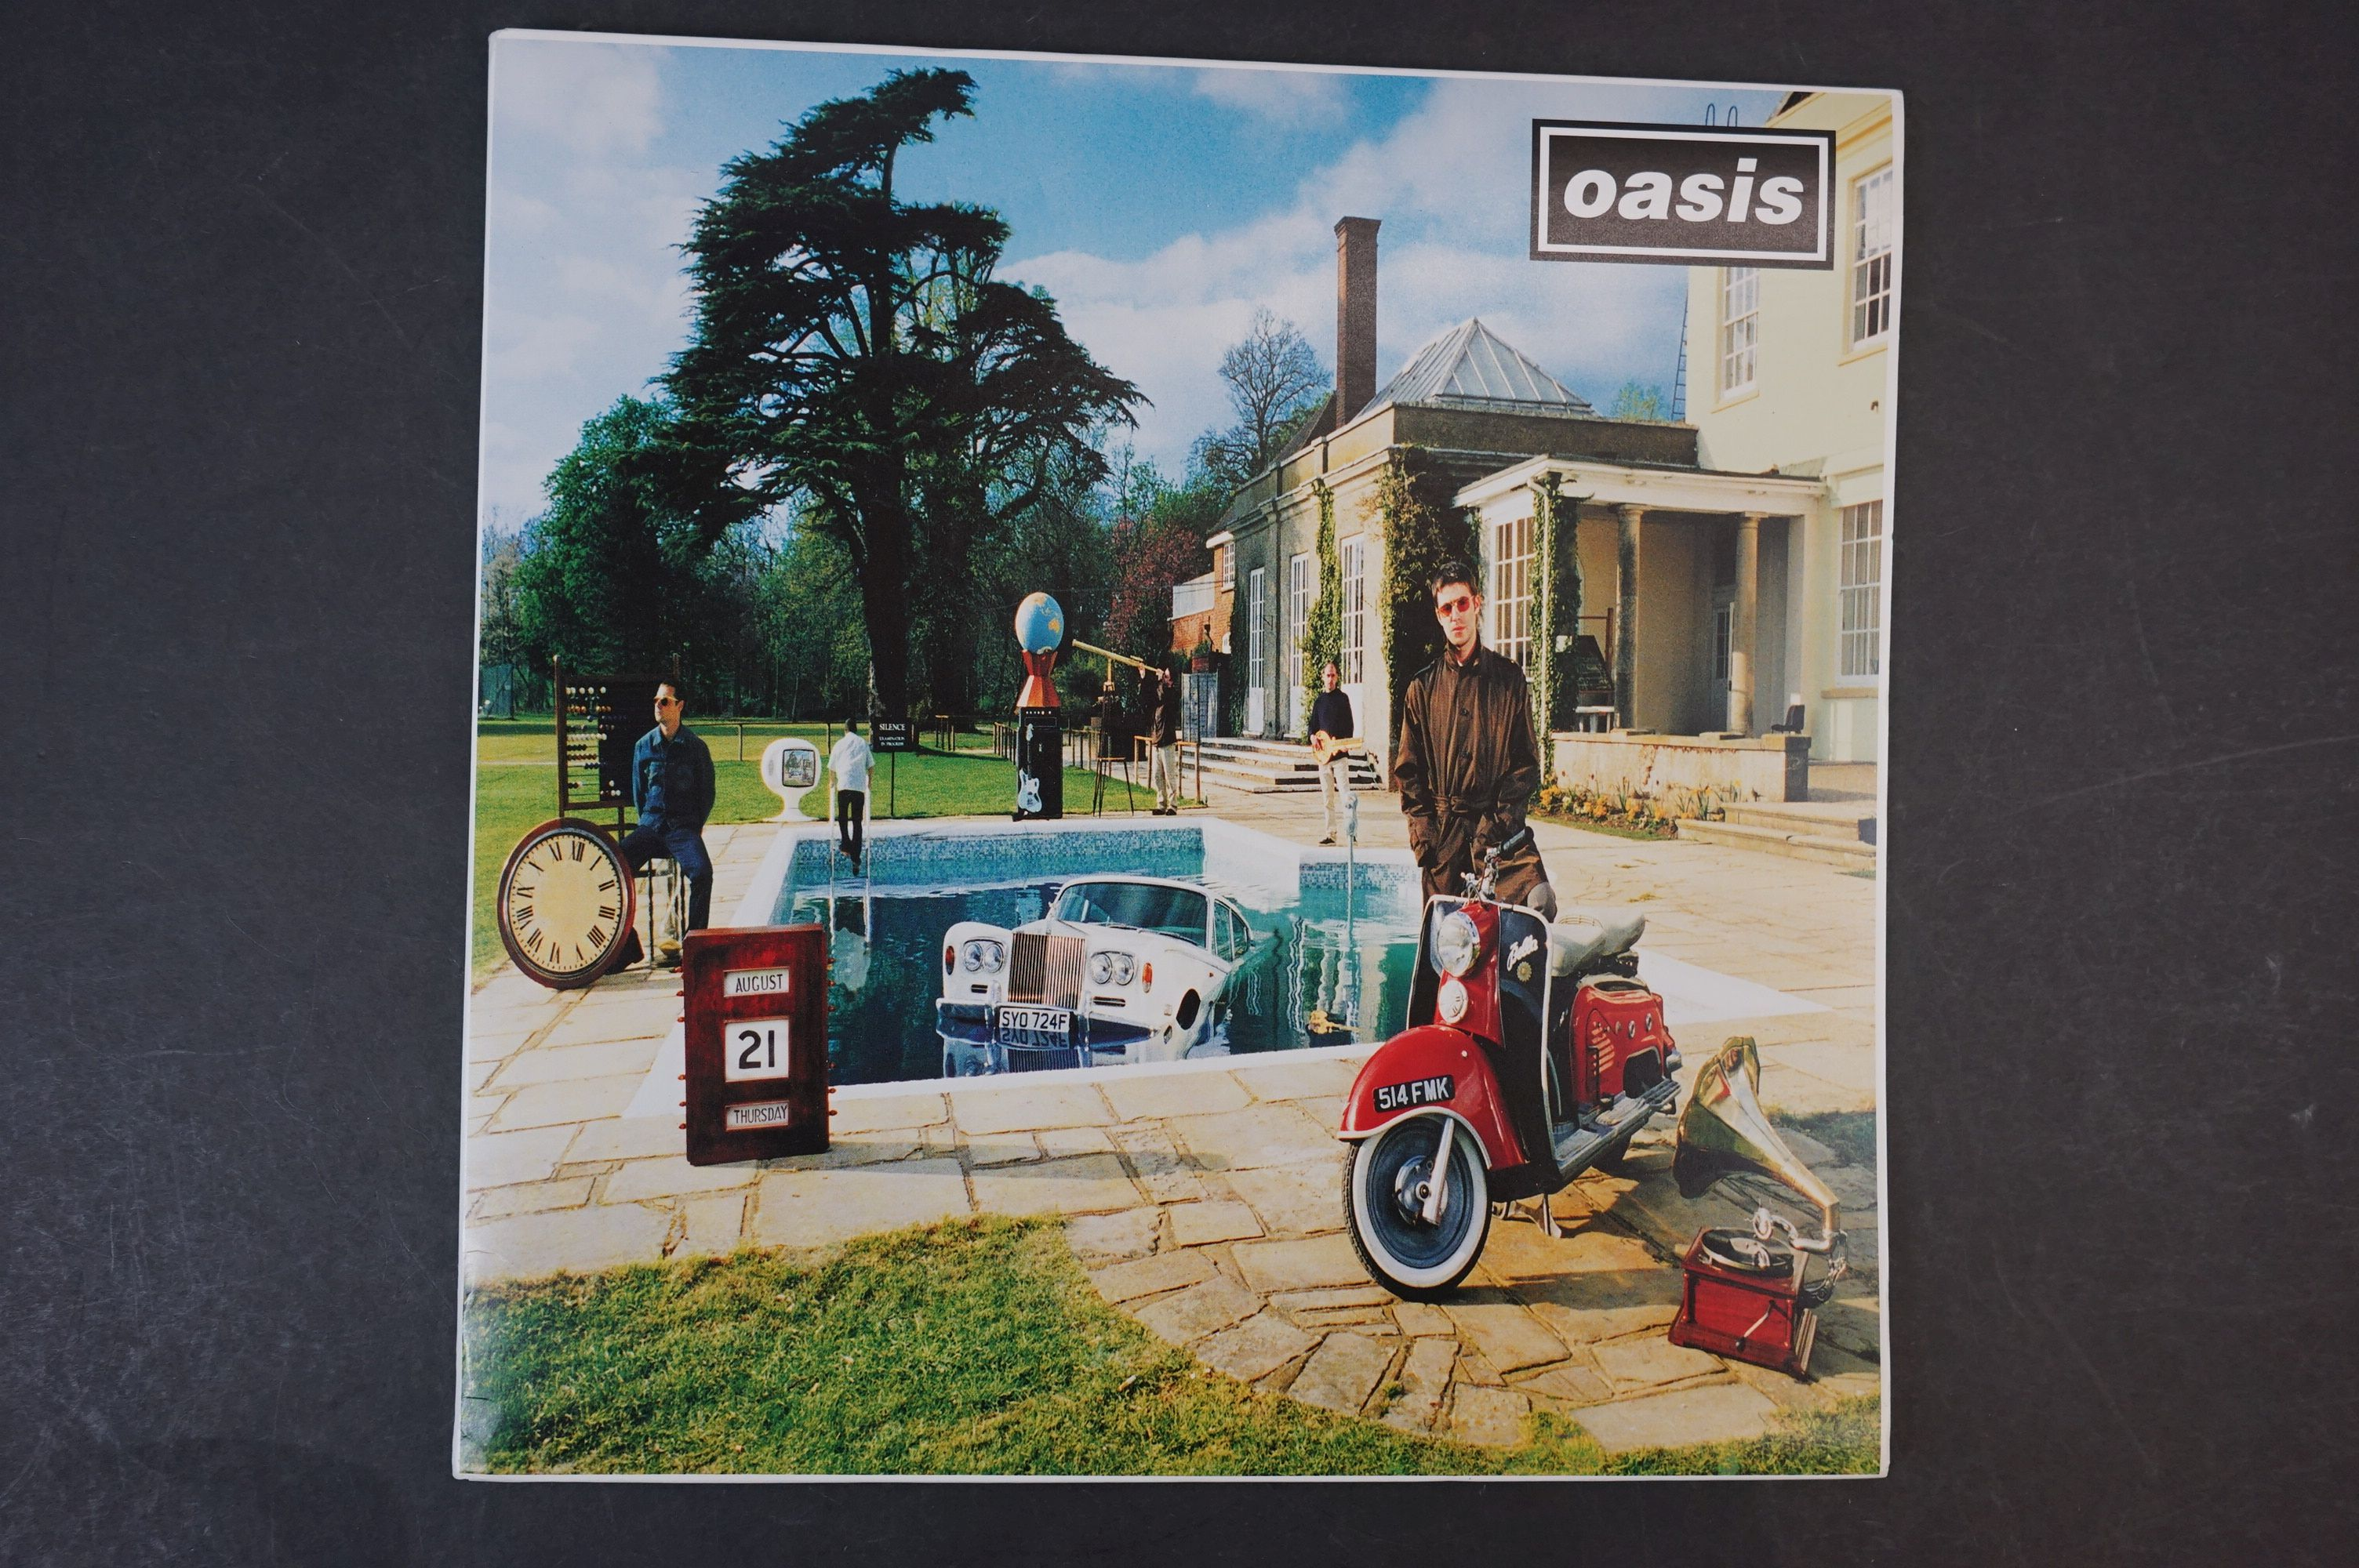 Vinyl - Oasis Be Here Now 2 LP on Creation CRELP219, sleeve ex, vinyl vg+ with a couple of marks - Image 9 of 10